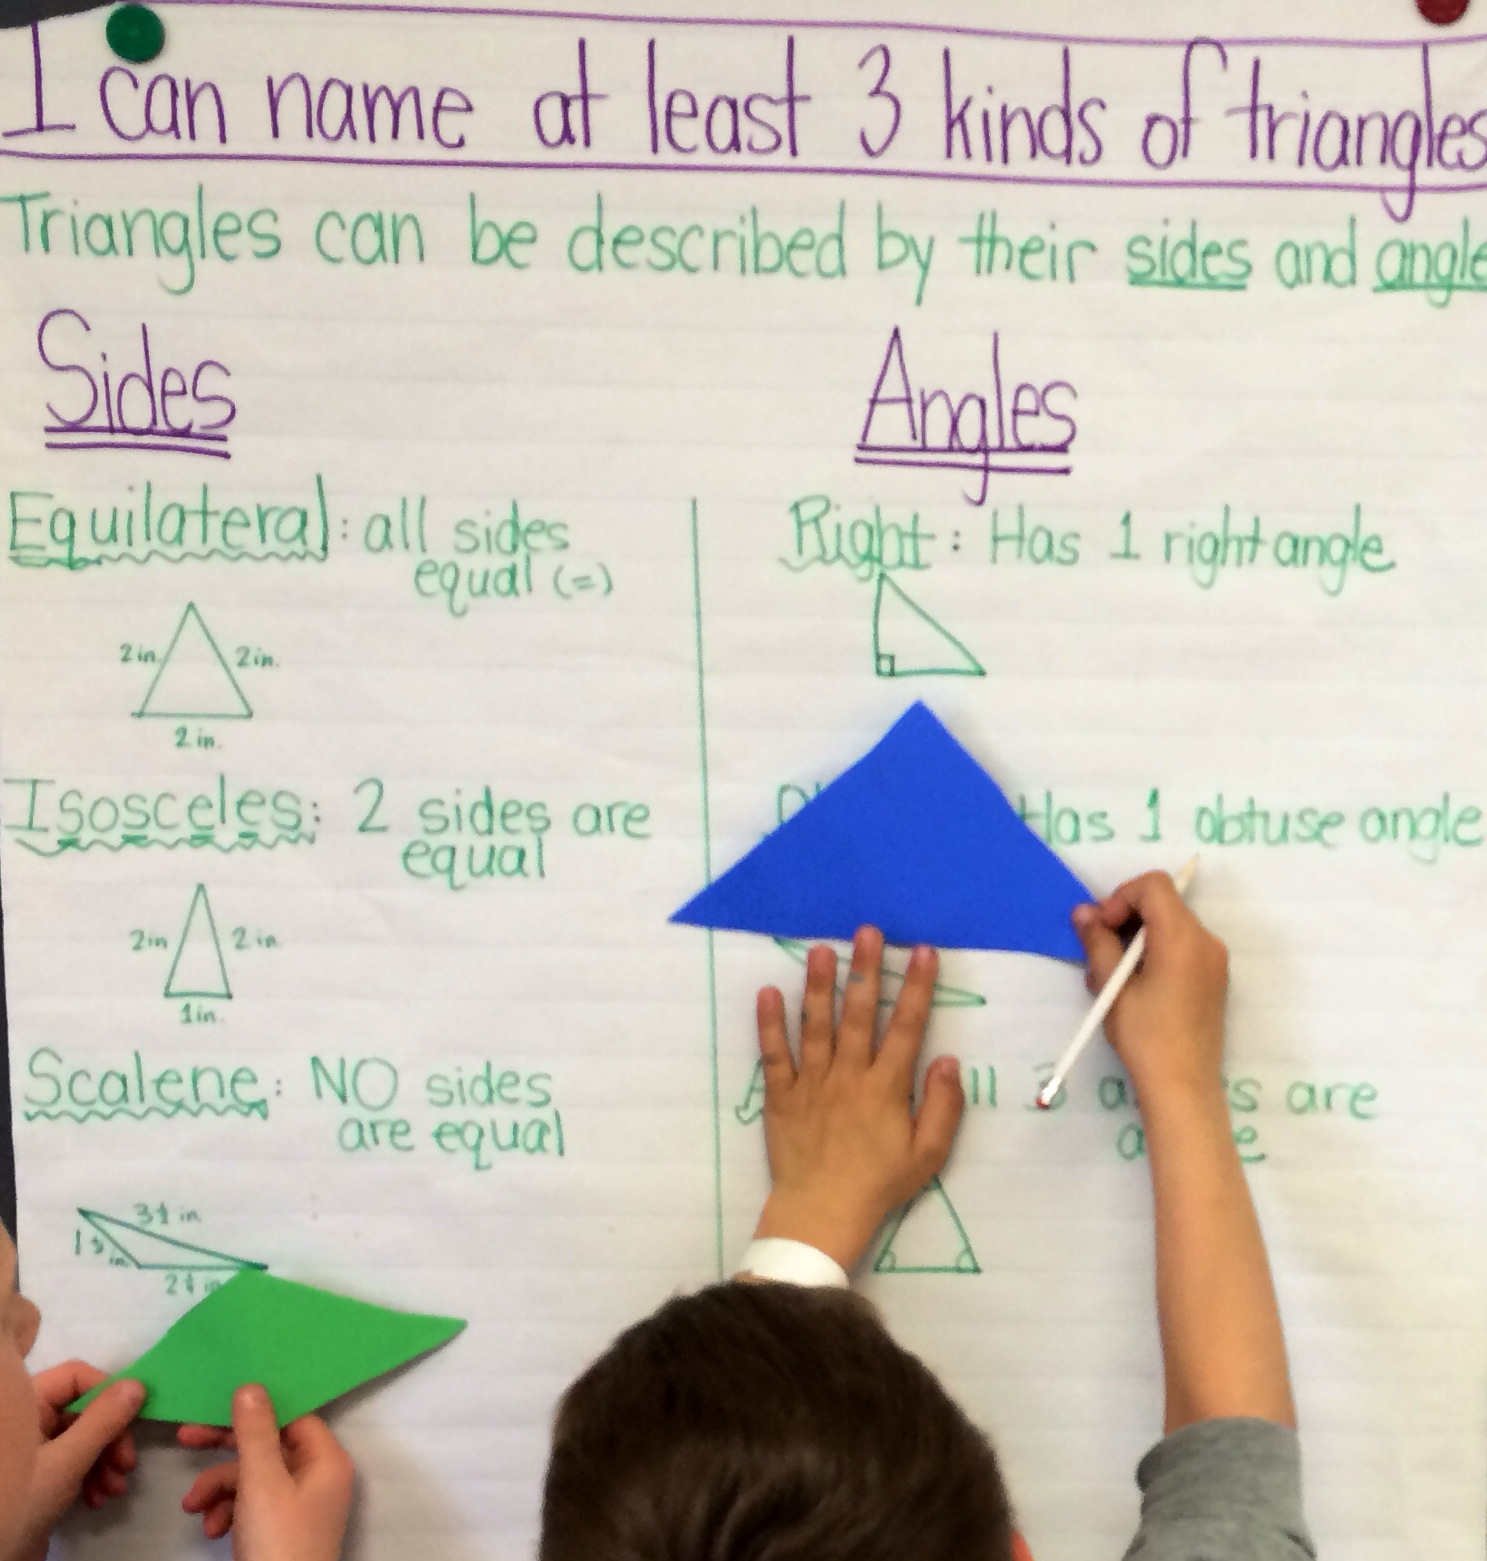 Classifying Shapes Using Tangrams